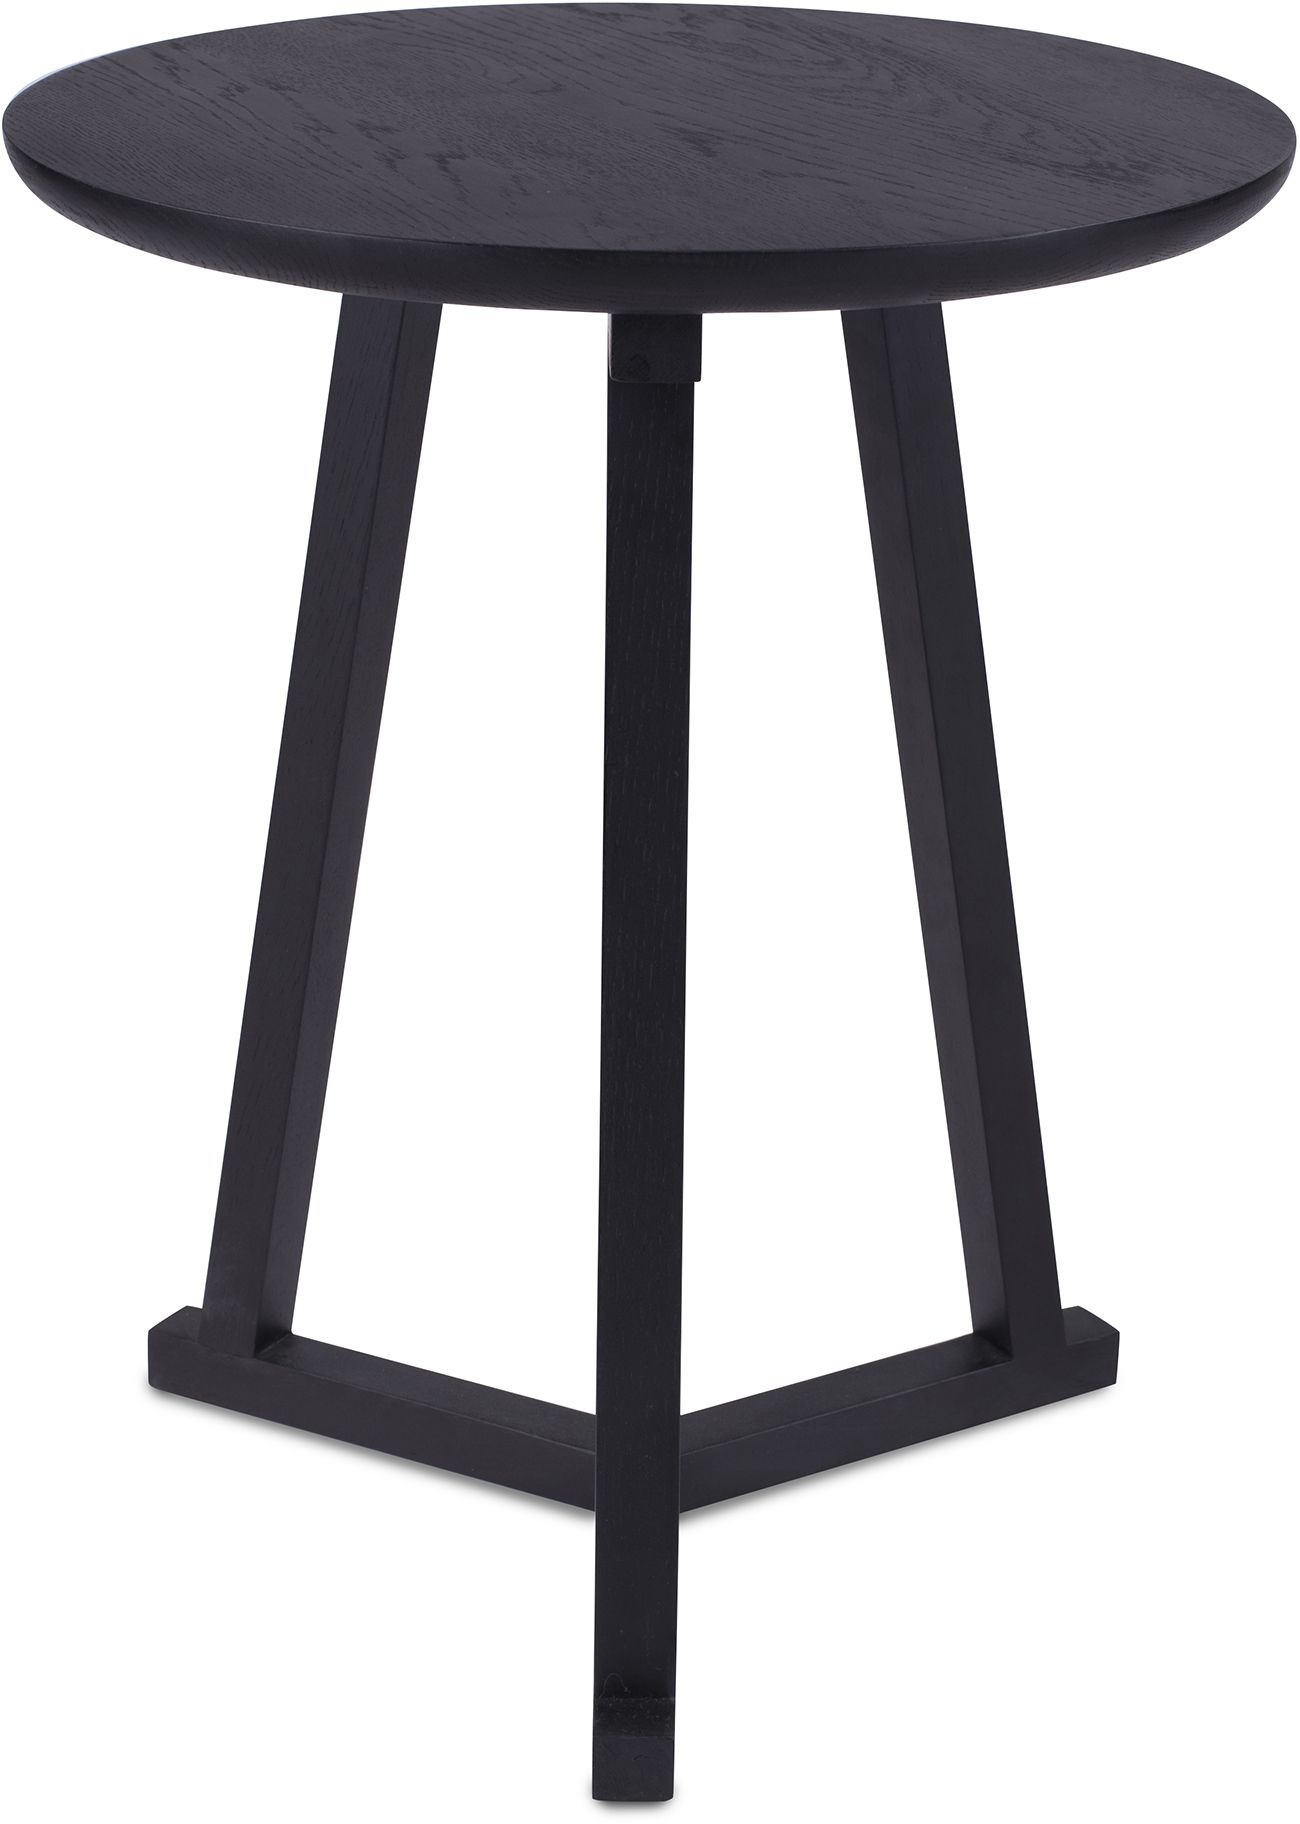 oak tripod side table black outdoor accent inch tablecloth drawer coffee for sectional white linen placemats pier dining room furniture console behind sofa decorative chests and